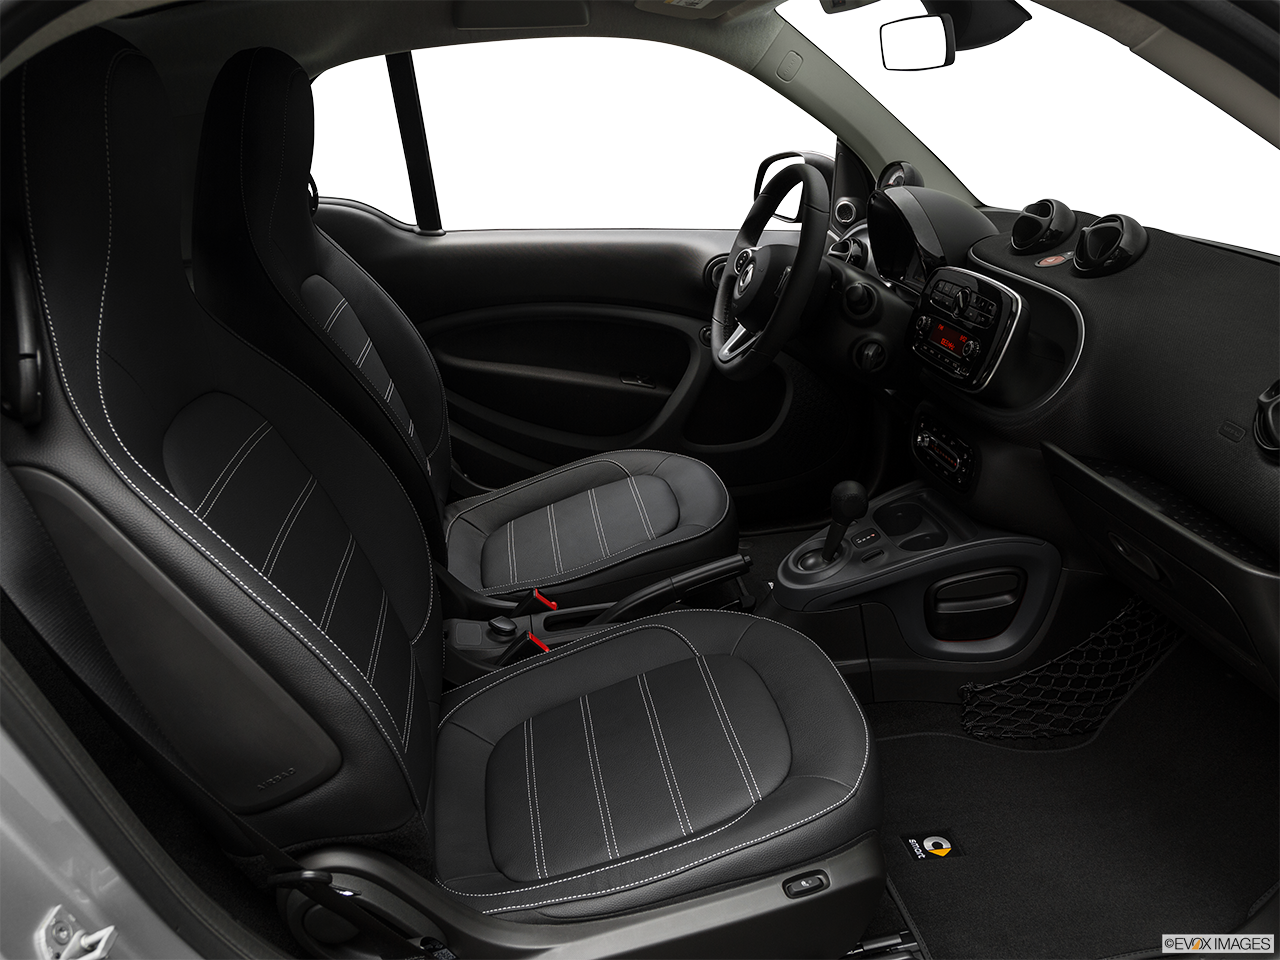 Interior view of the Smart fortwo electric